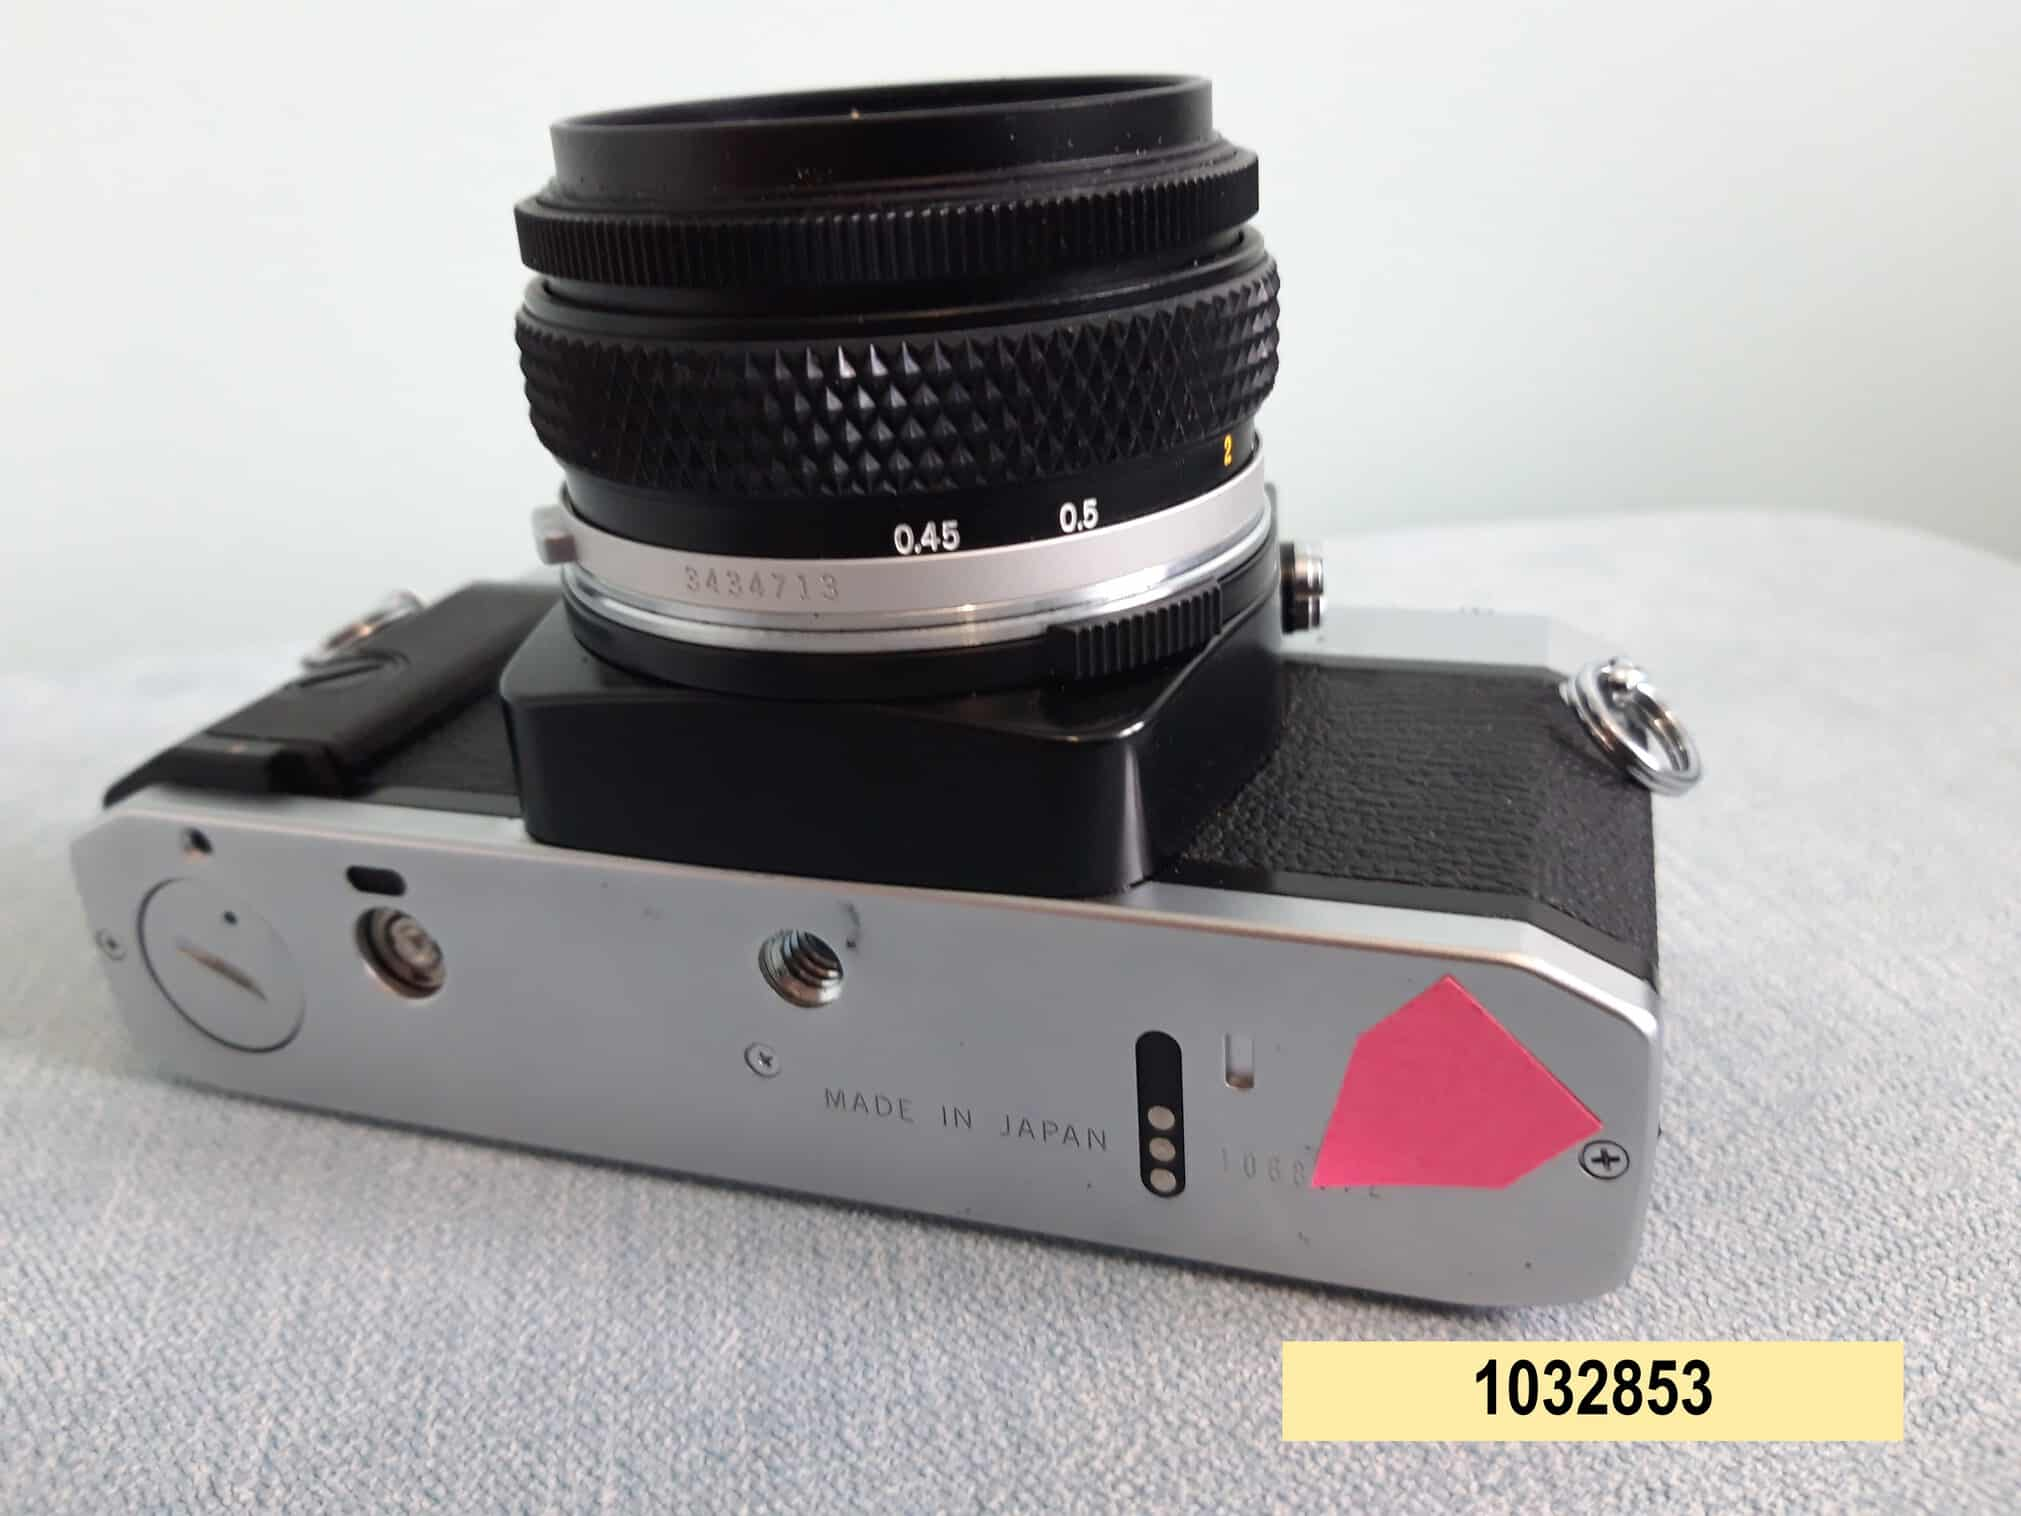 Olympus OM20 + serial number (Source: Avon and Somerset Police)